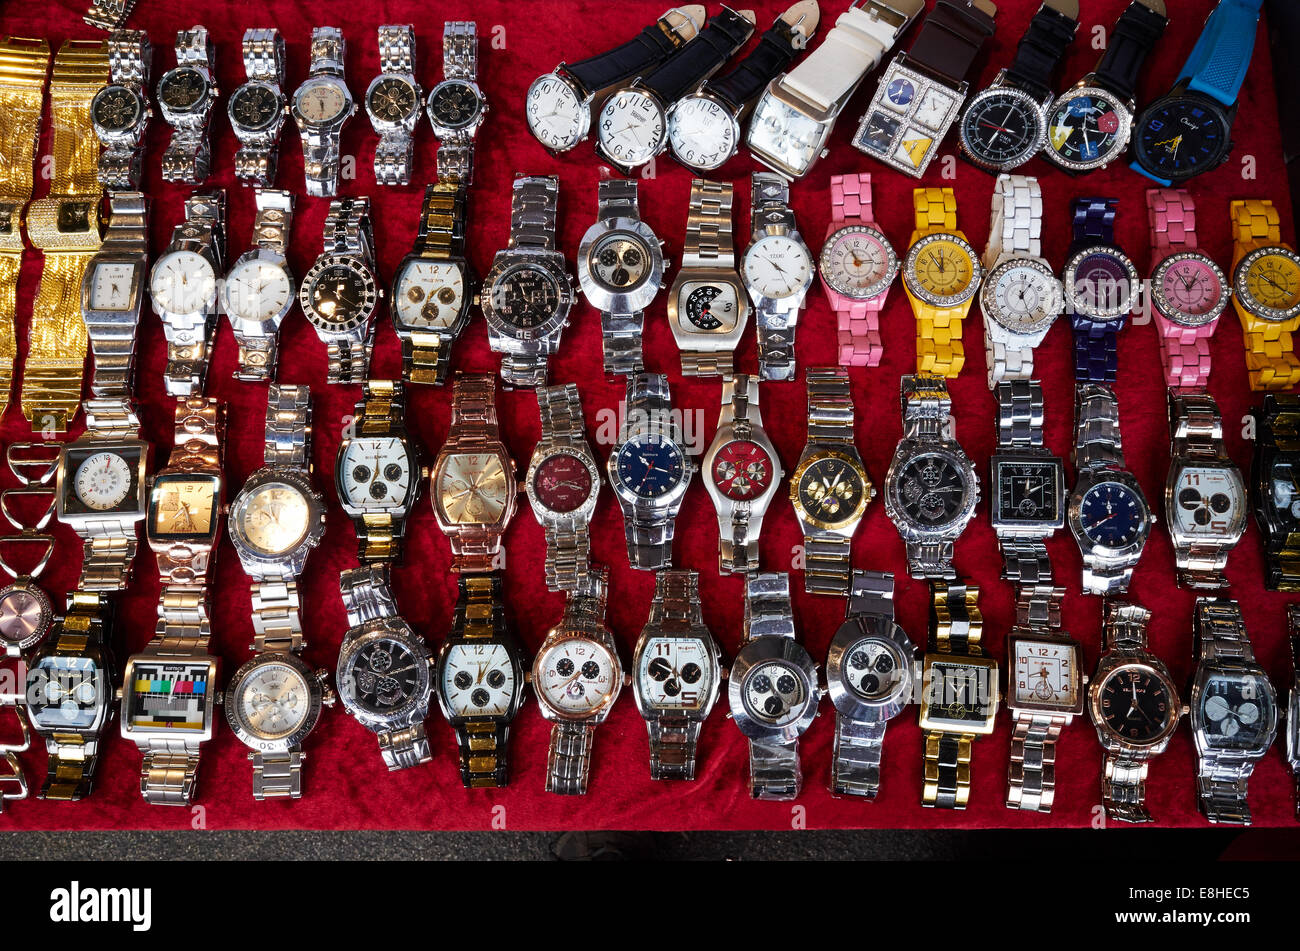 Watches for sale at East Street Market, London, UK - Stock Image